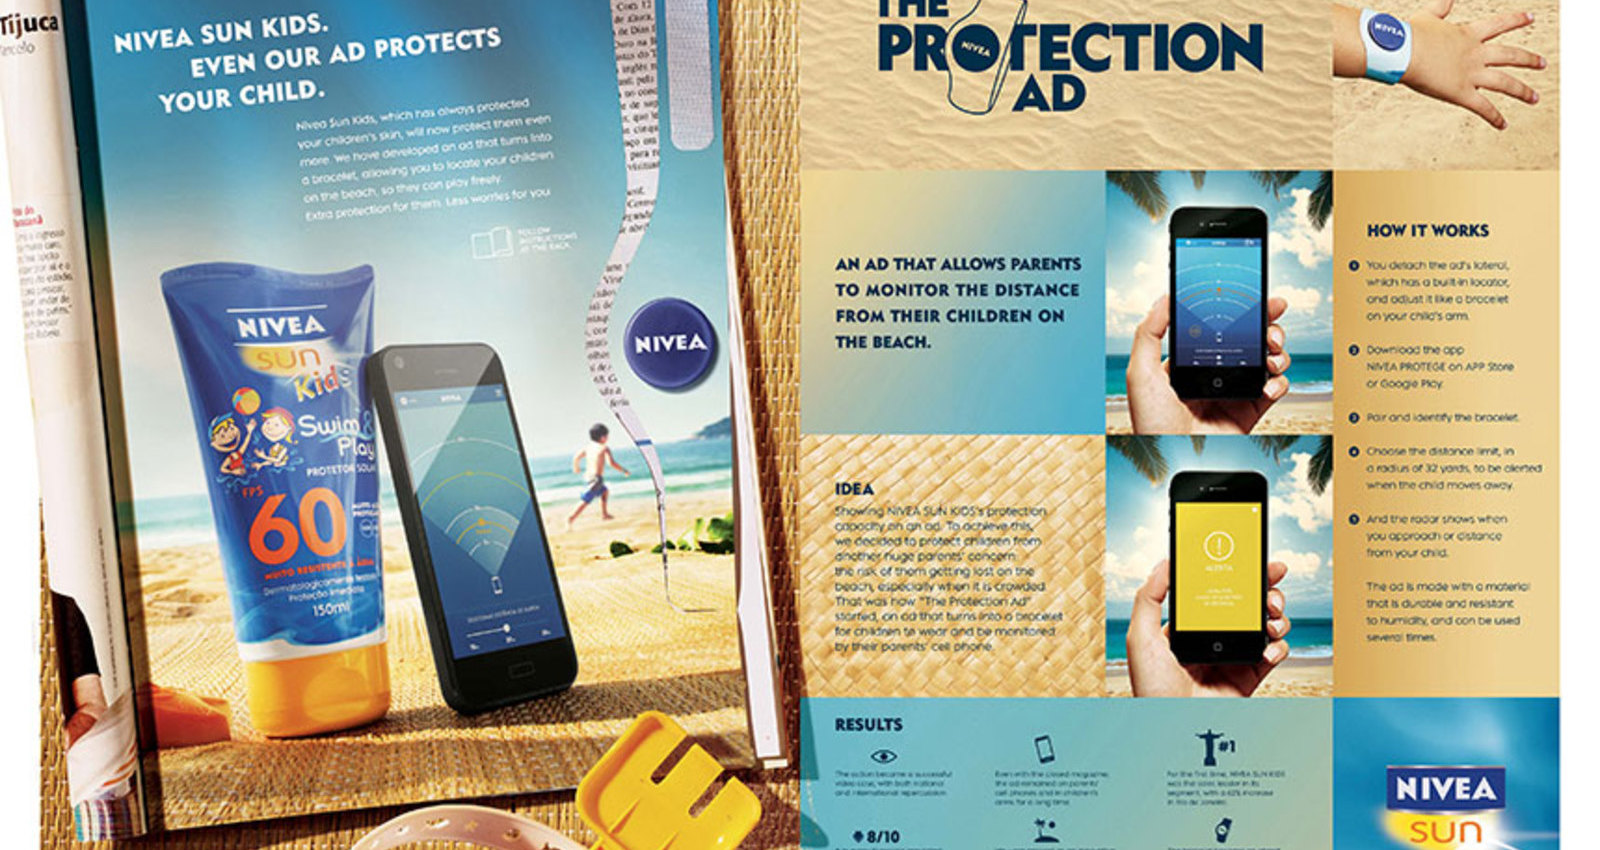 PROTECTION AD